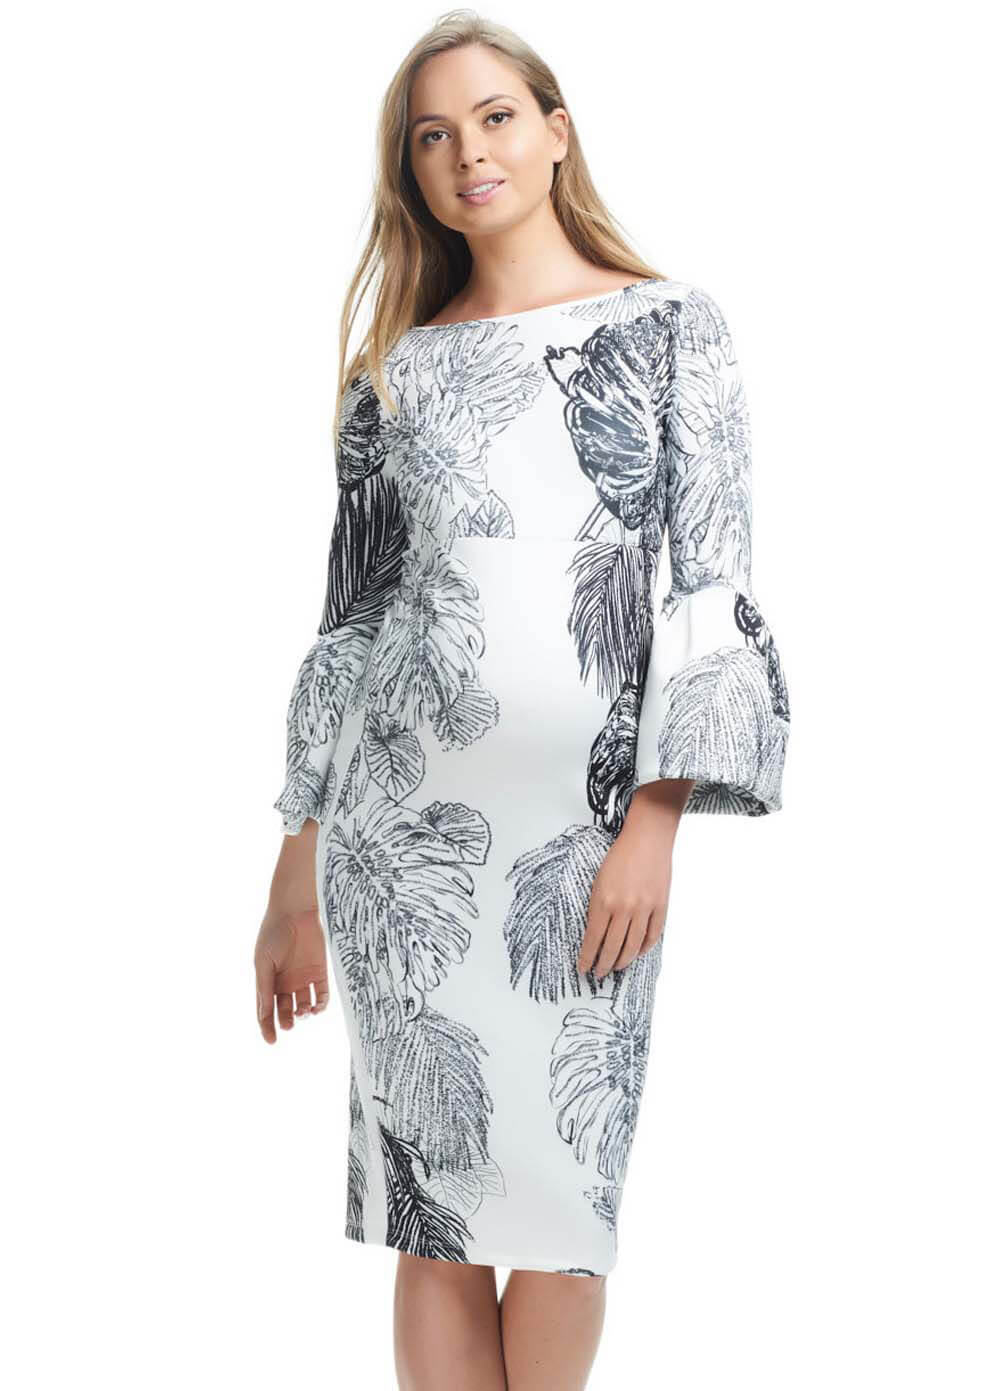 881eda2b6518 Myra Ruffled Sleeved Maternity Dress by Soon Maternity